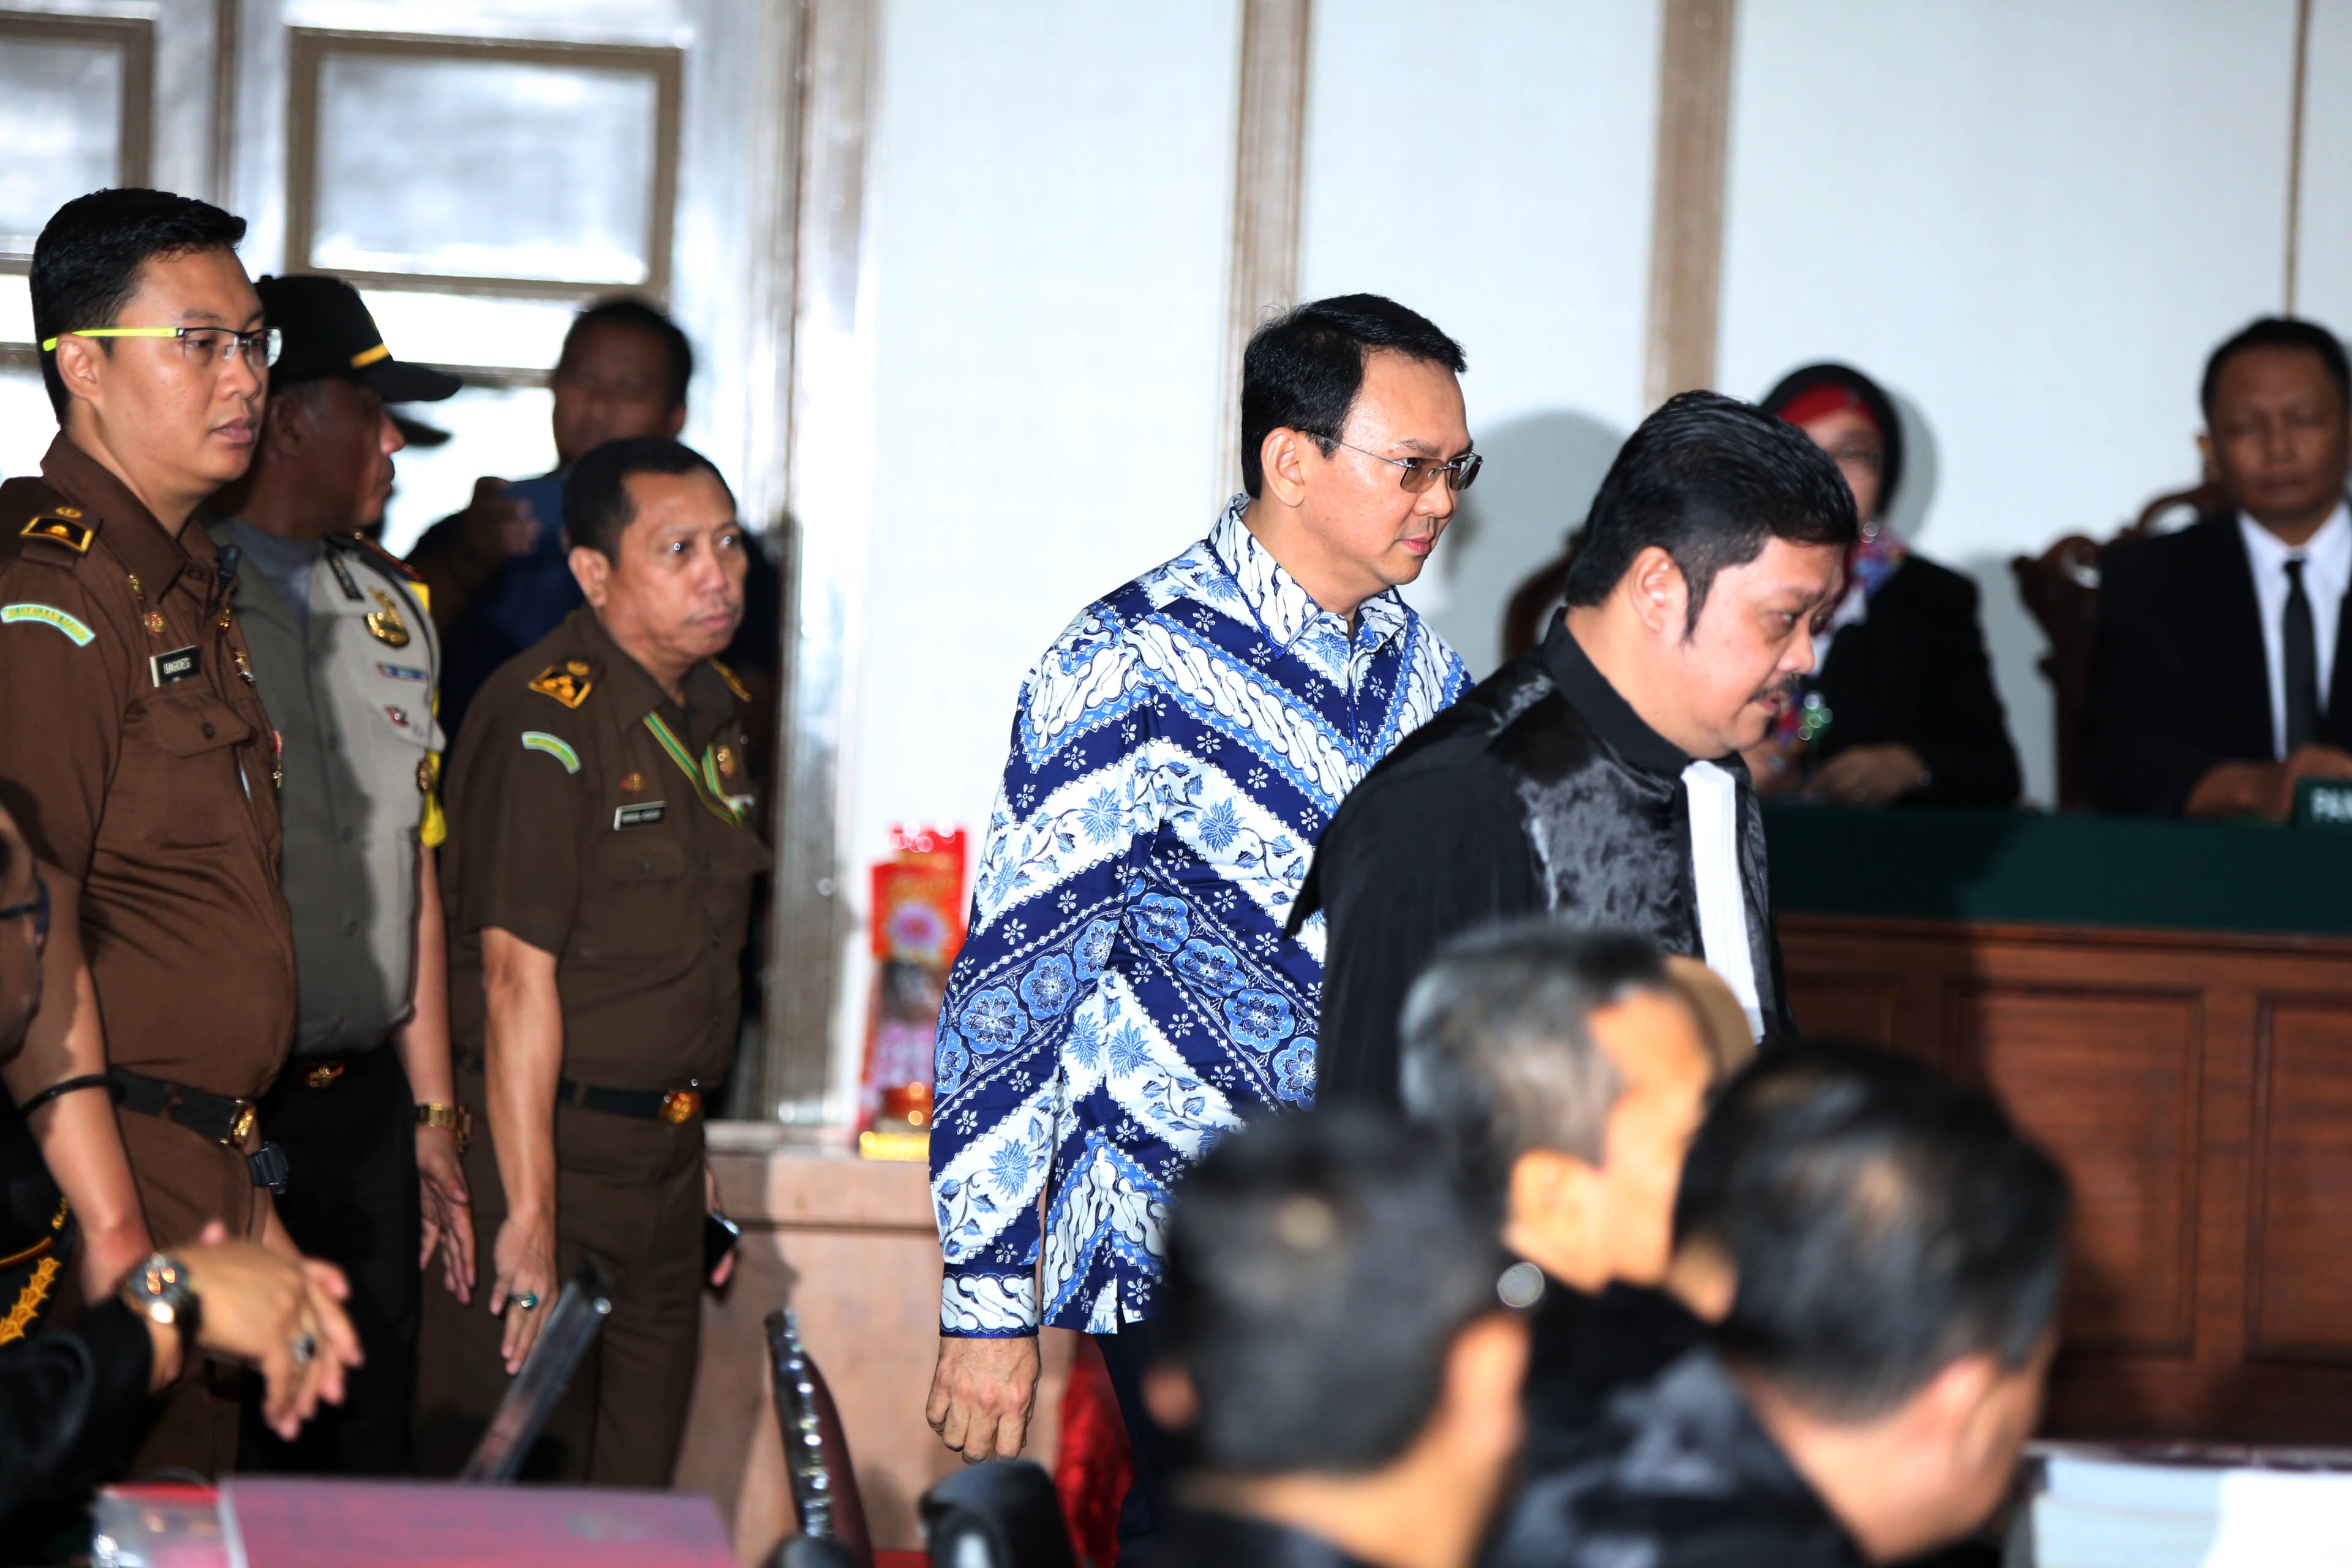 Jakarta Governor Basuki Tjahaja Purnama, popularly known as Ahok, arrives at a courtroom for his verdict and sentence in his blasphemy trial in Jakarta on May 9, 2017, in Jakarta